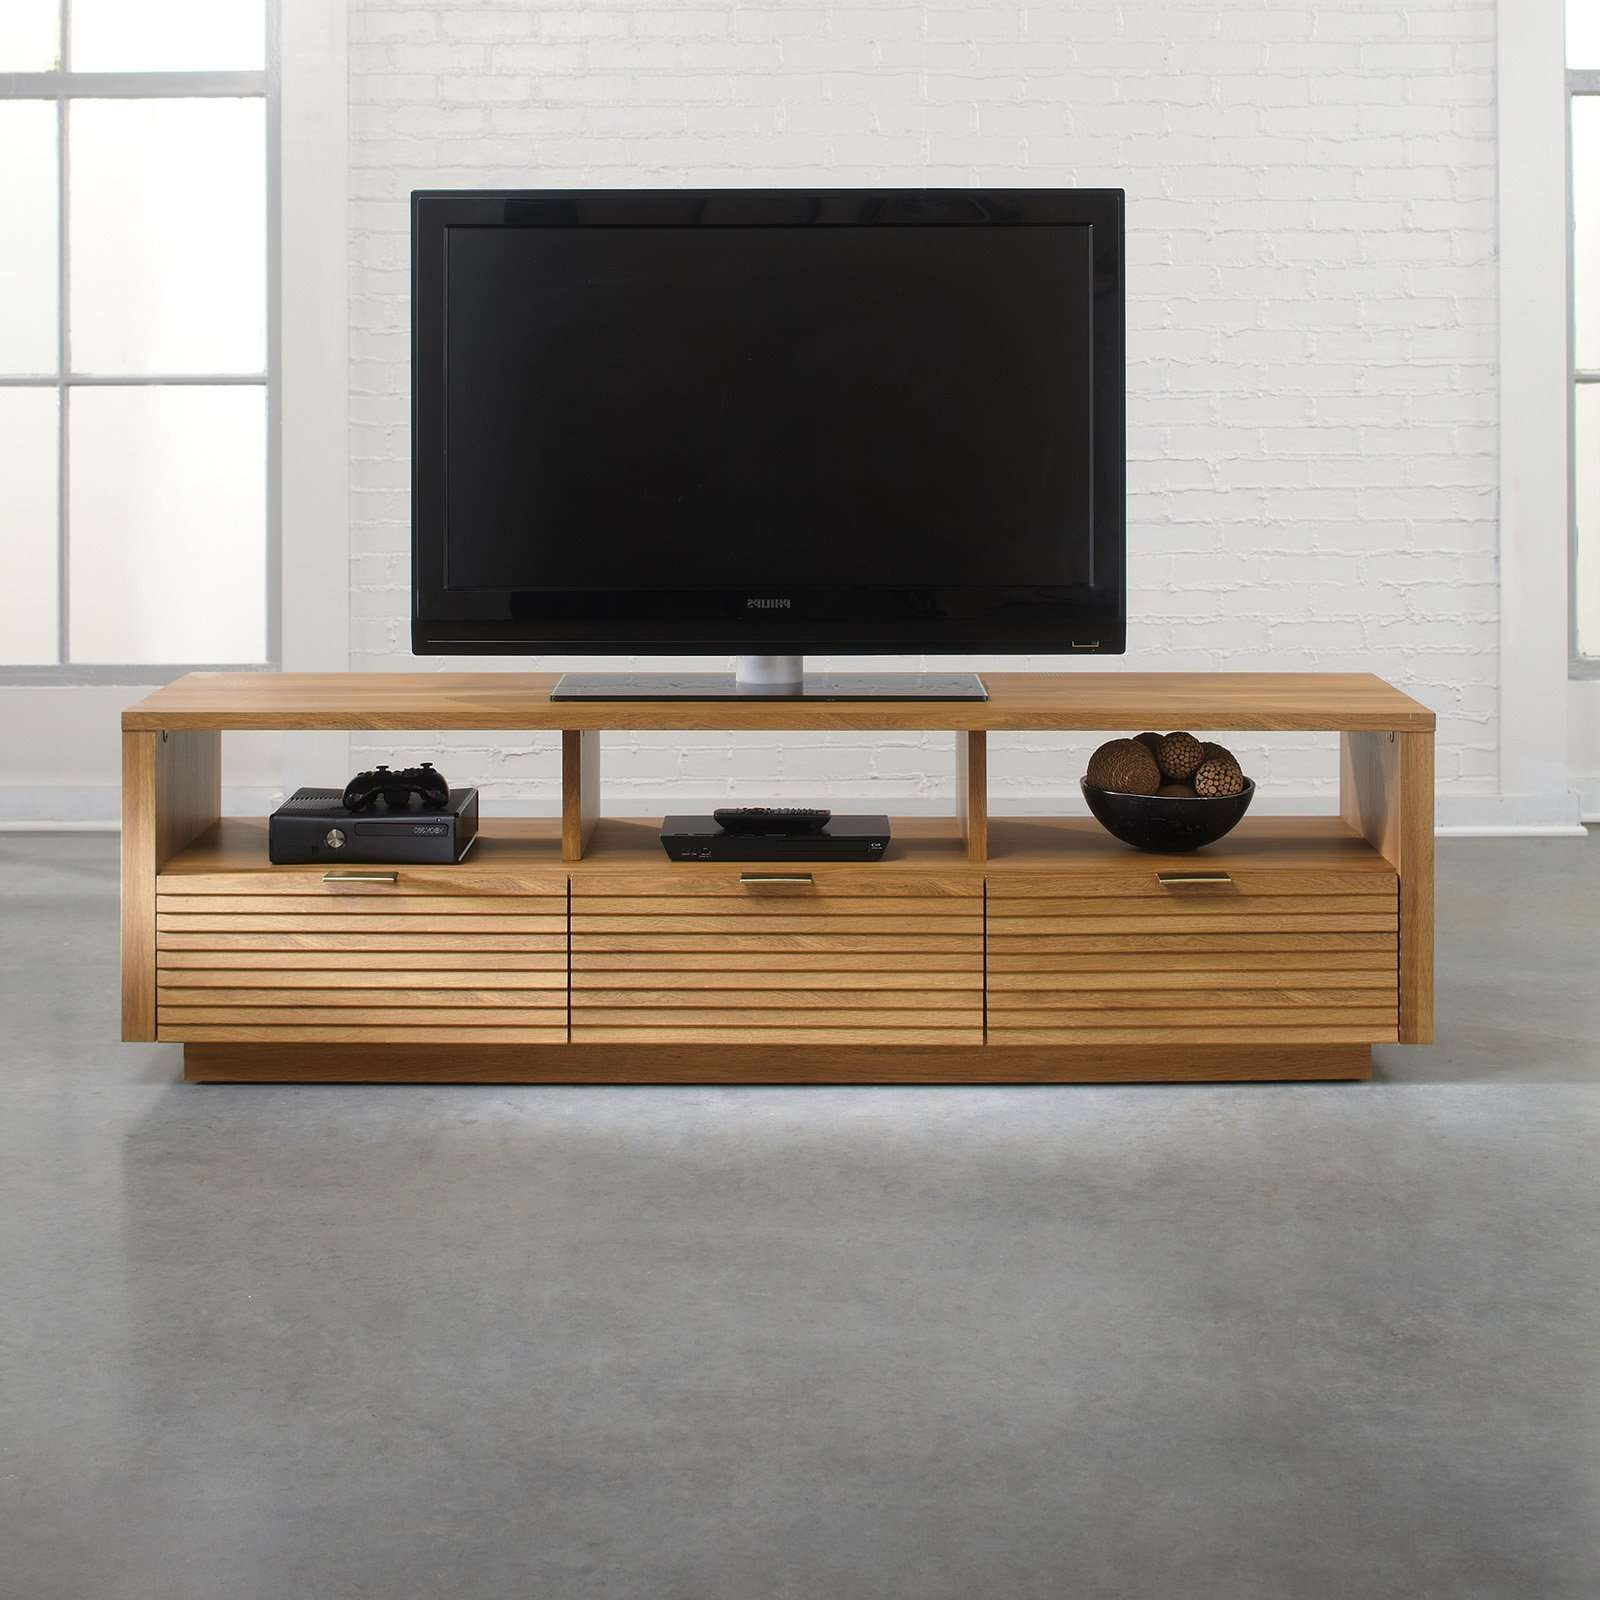 Belham Living Carter Mid Century Modern Tv Stand | Hayneedle With Modern Low Profile Tv Stands (View 2 of 15)